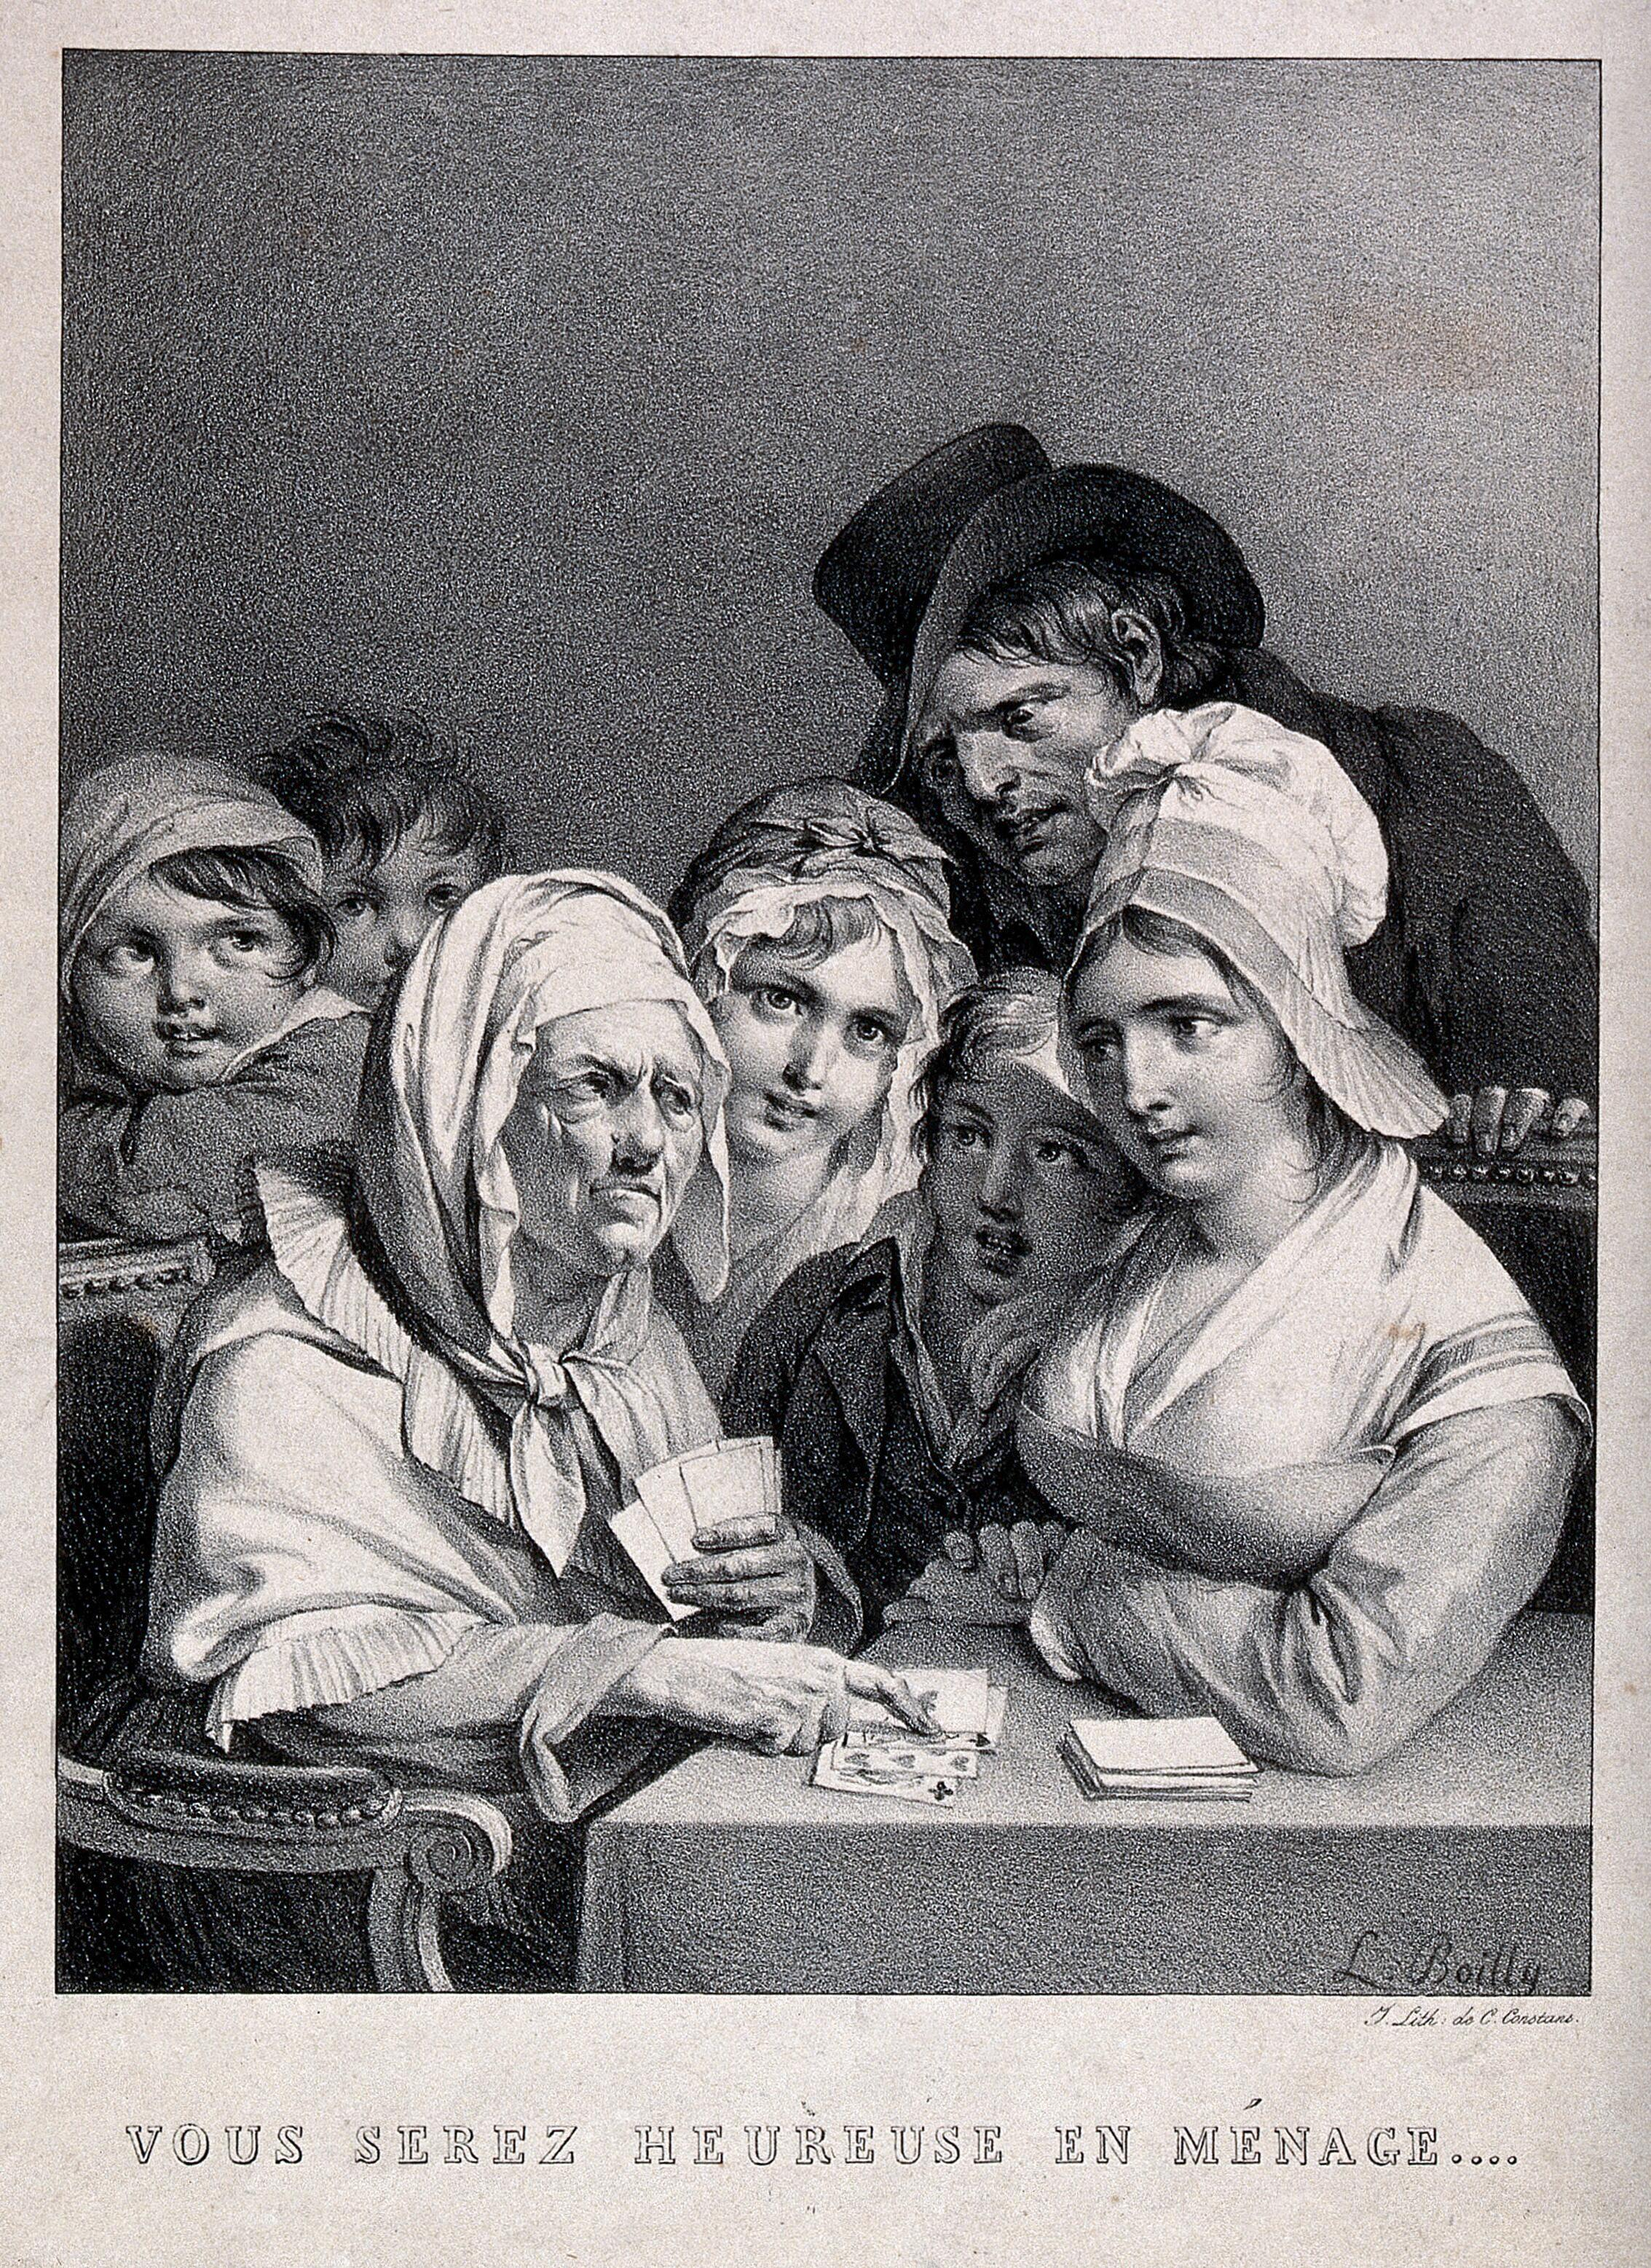 A young woman of humble origins, surrounded by children, is being